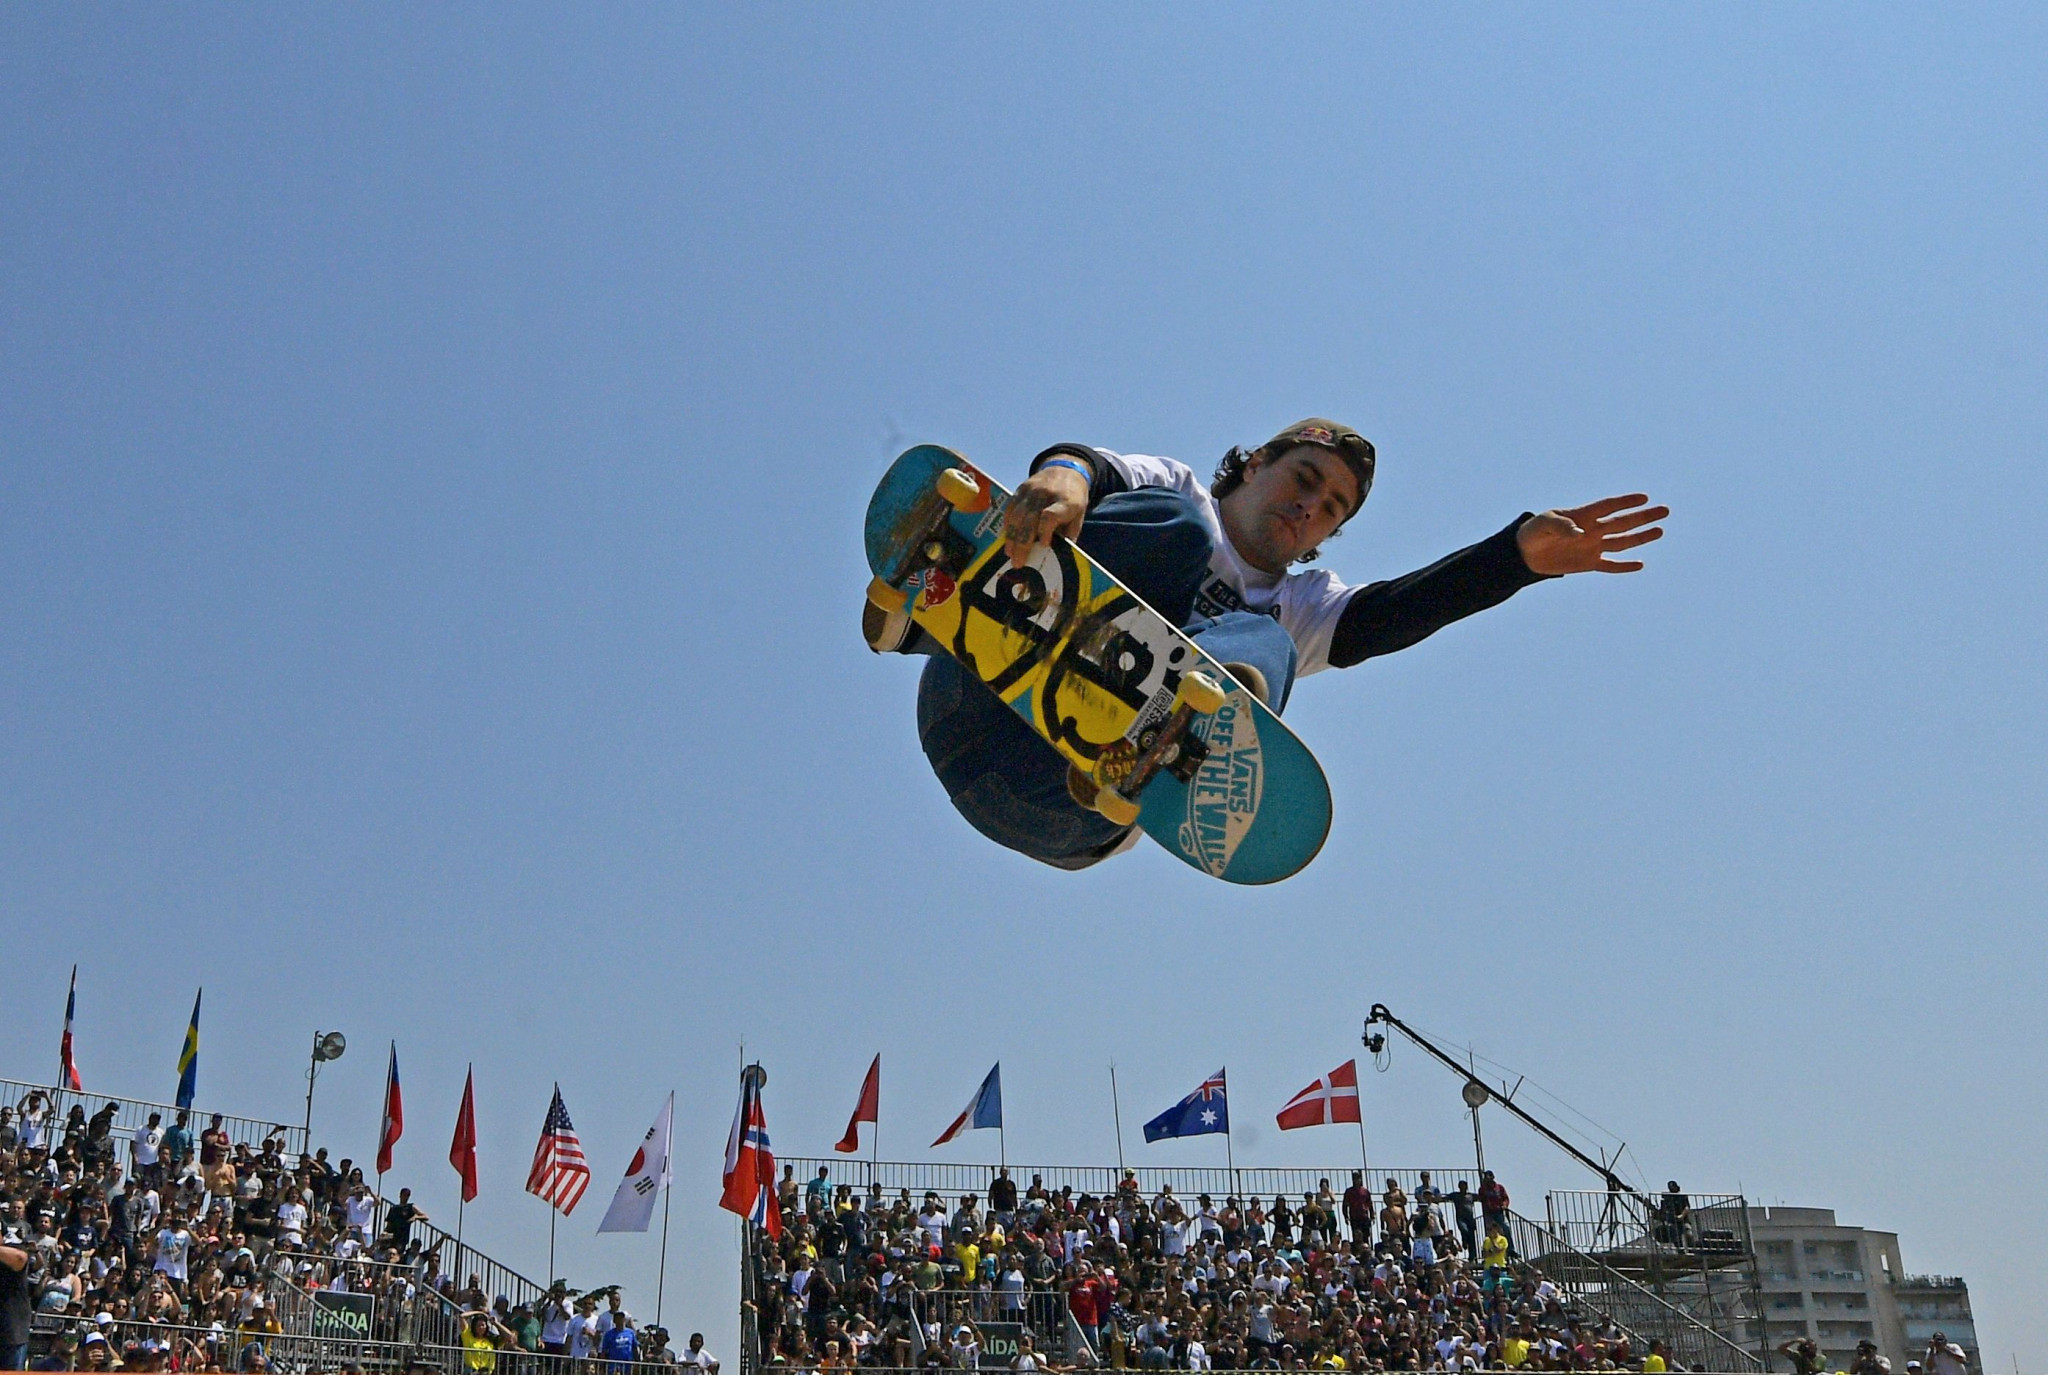 Skateboarding is due to make its Olympic debut at Tokyo 2020 ©Getty Images